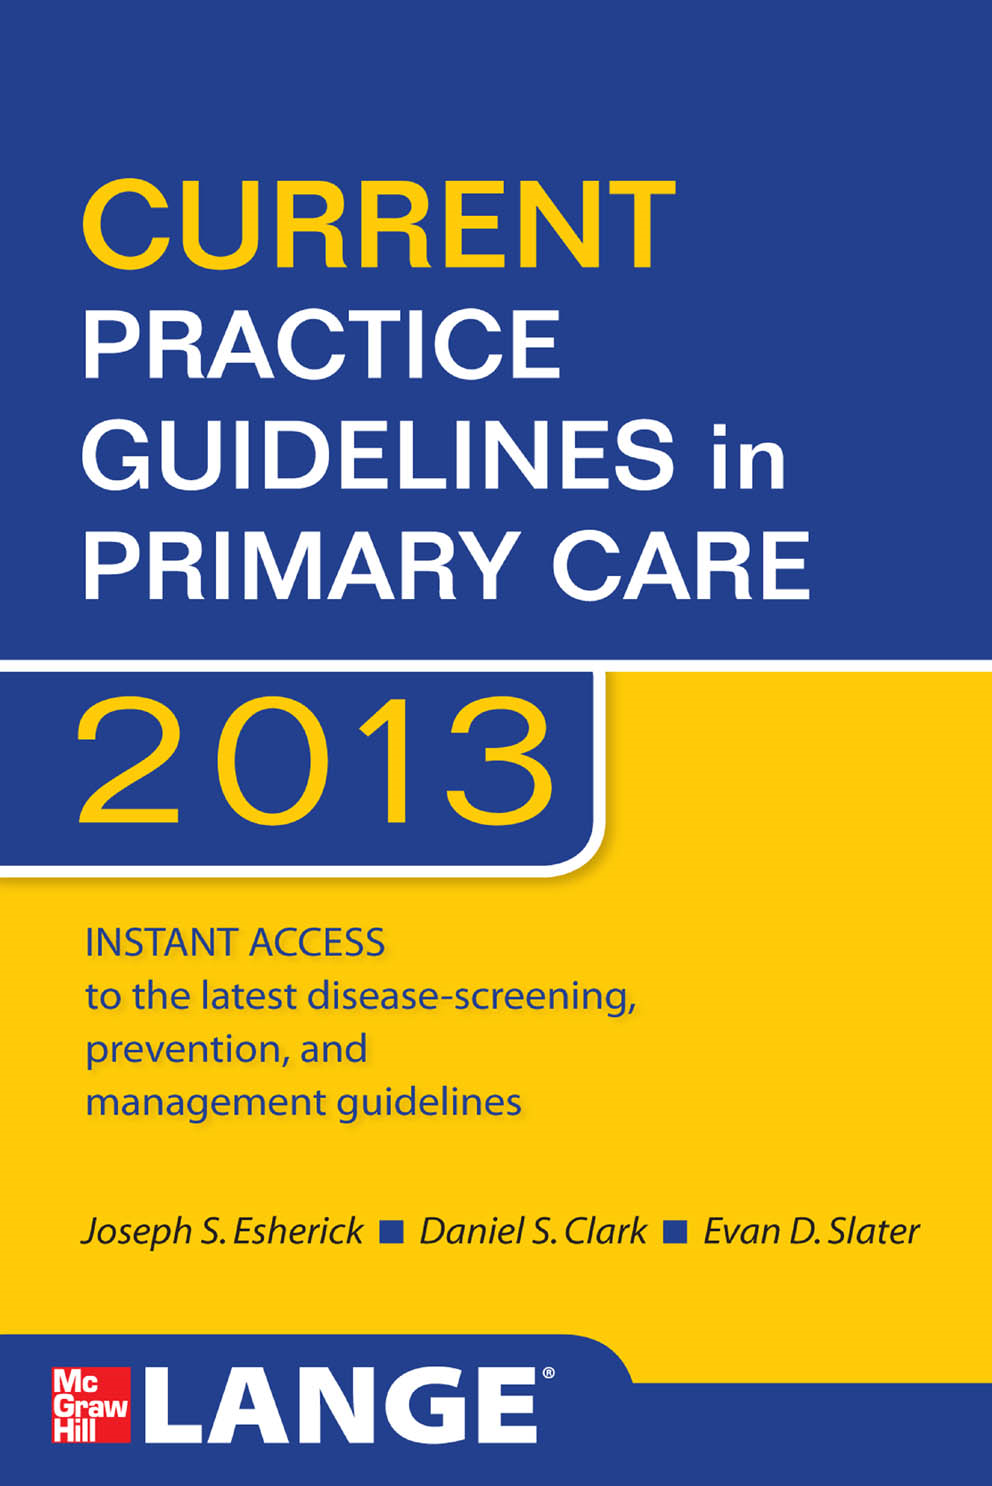 CURRENT Practice Guidelines in Primary Care 2013 By:  Daniel S. Clark, Evan D. Slater,Joseph S. Esherick